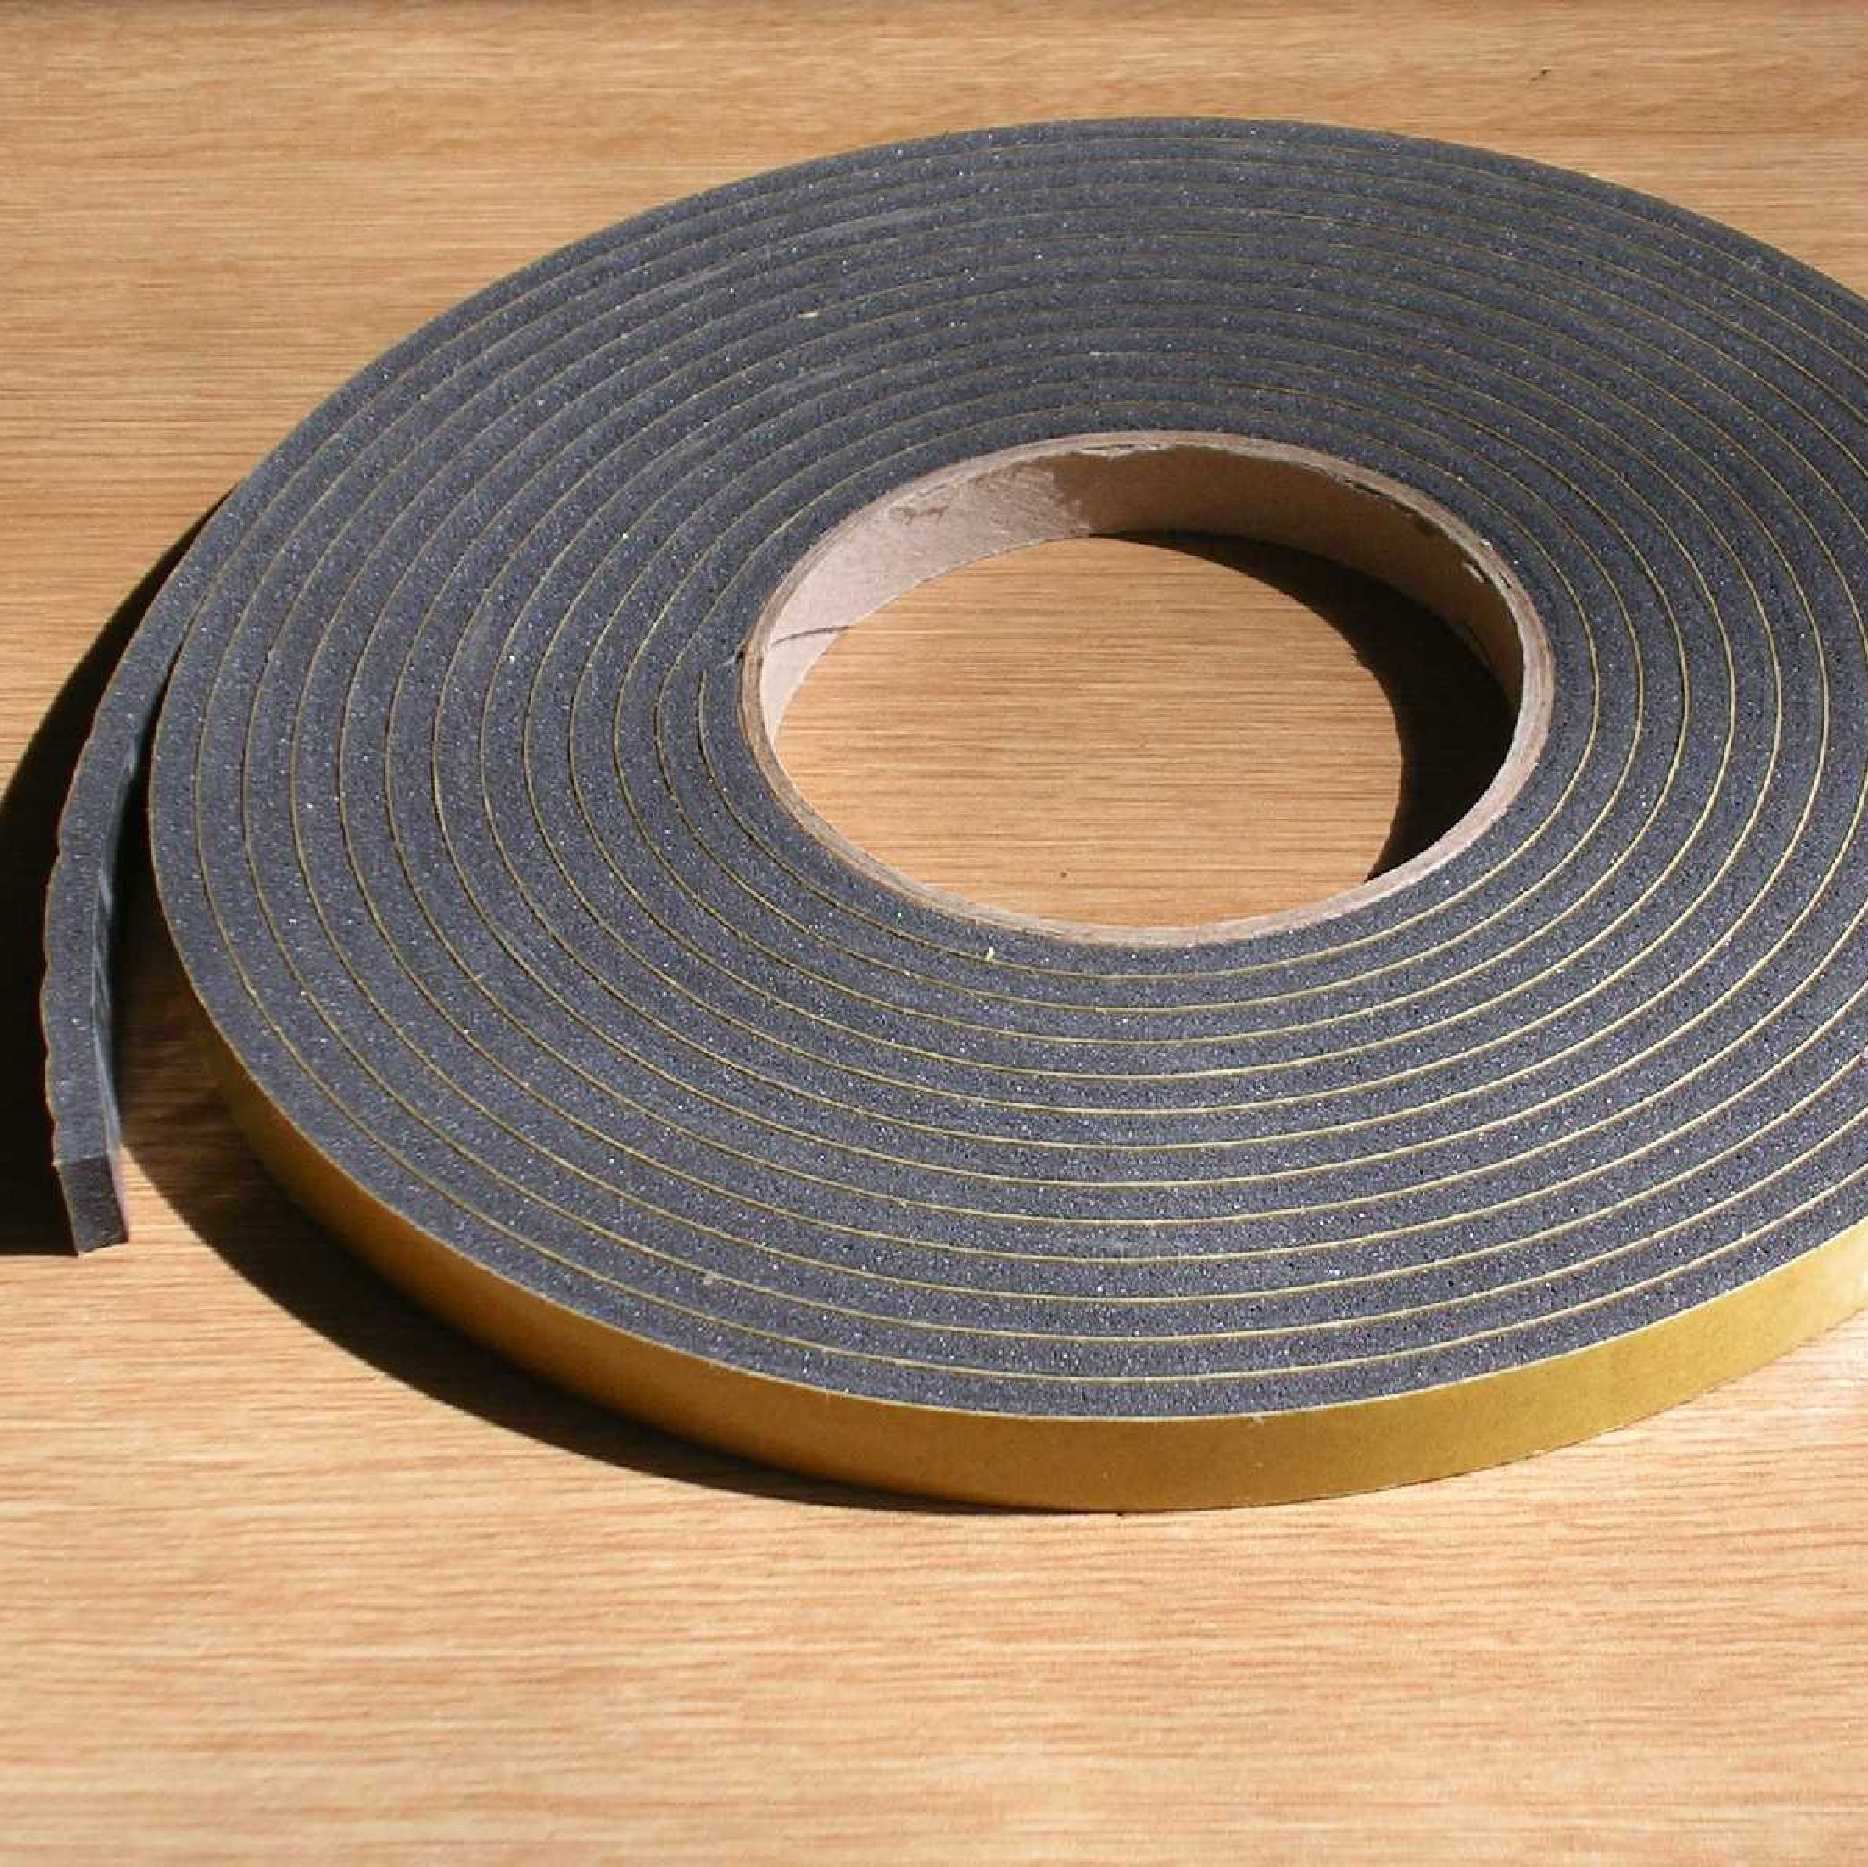 Greenhouse Glazing Tape, Double sided, 10m Roll